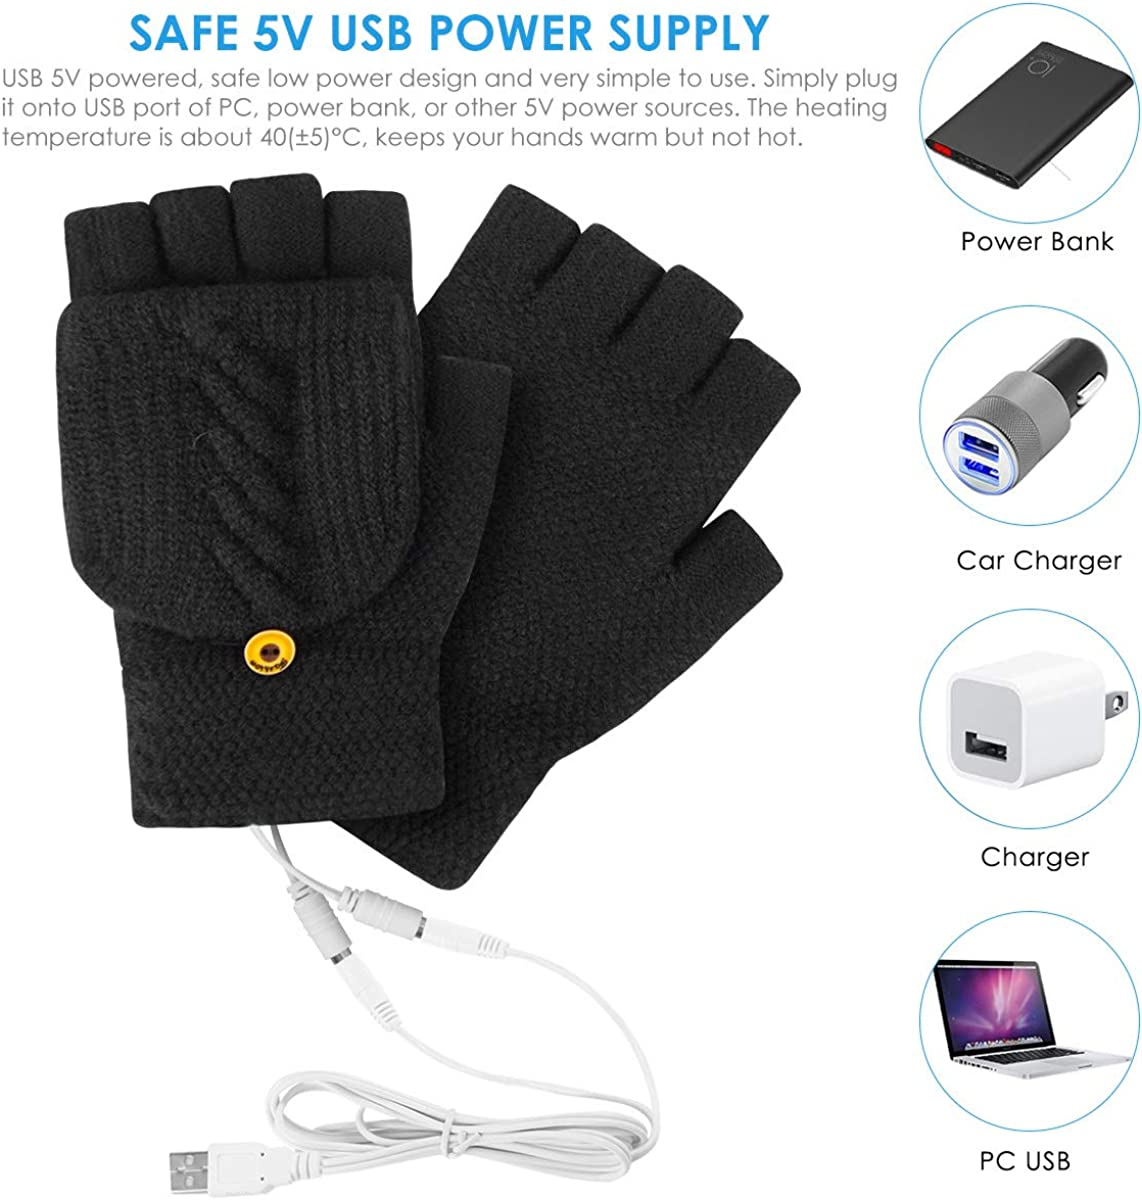 USB Heated Gloves Mitten Knitted Fingerless with Finger Cover Winter Warm for Men Women Typing Fishing Biking Camping Black